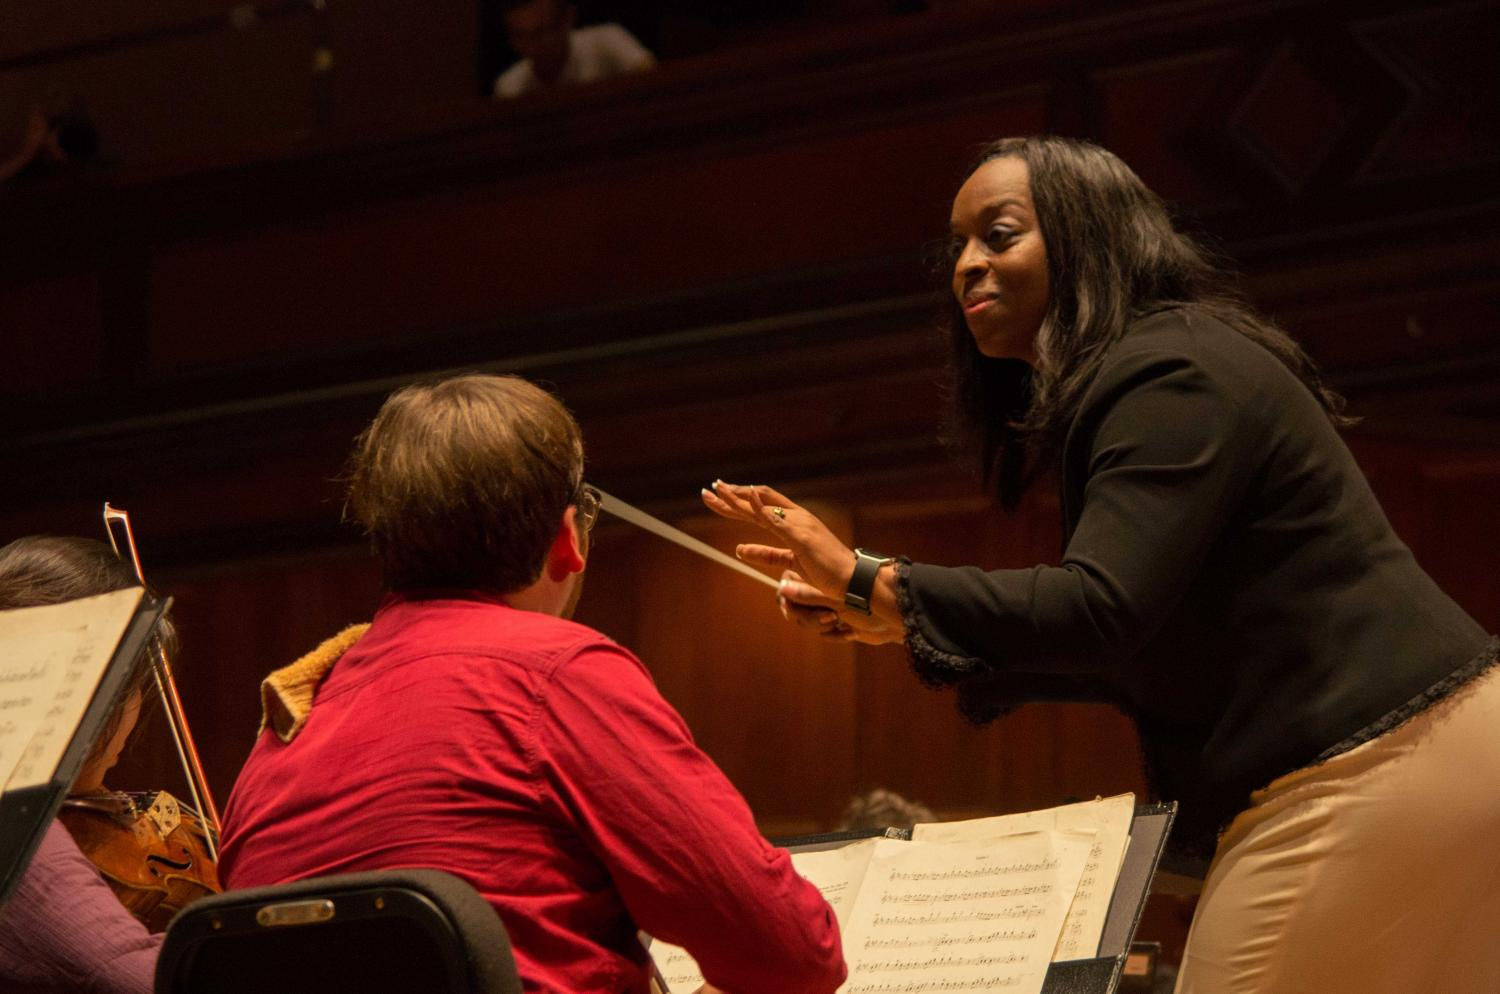 President Carmen Twillie Ambar made her conducting debut last Friday night, leading the Oberlin Orchestra in Johann Strauss' Radetzky March.